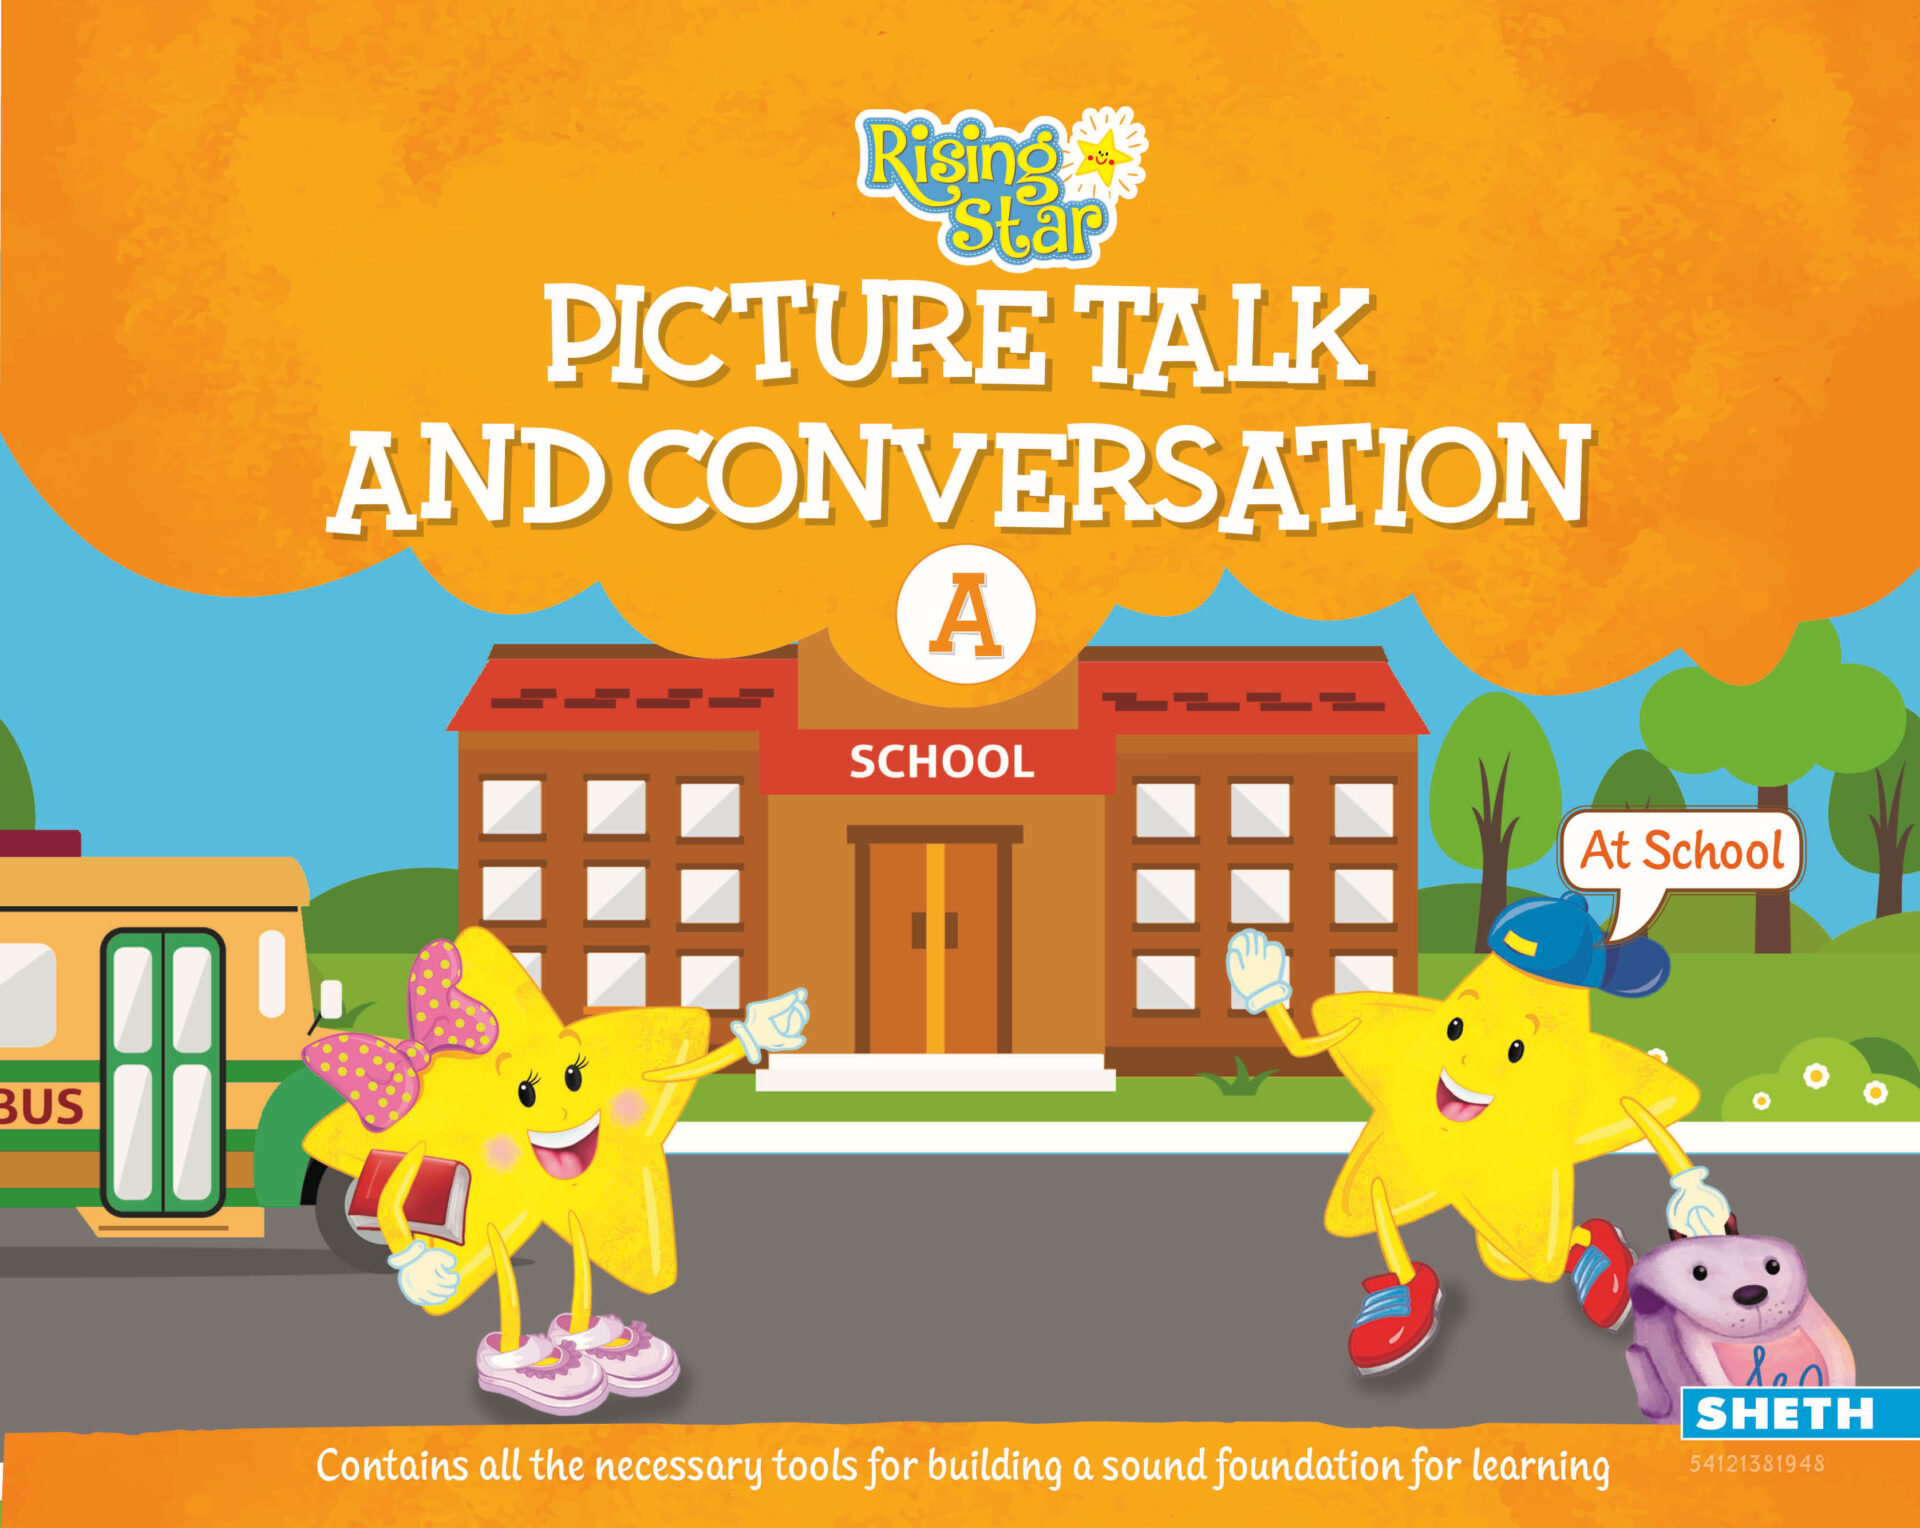 Rising Star Picture Talk and Conversation A 1 1